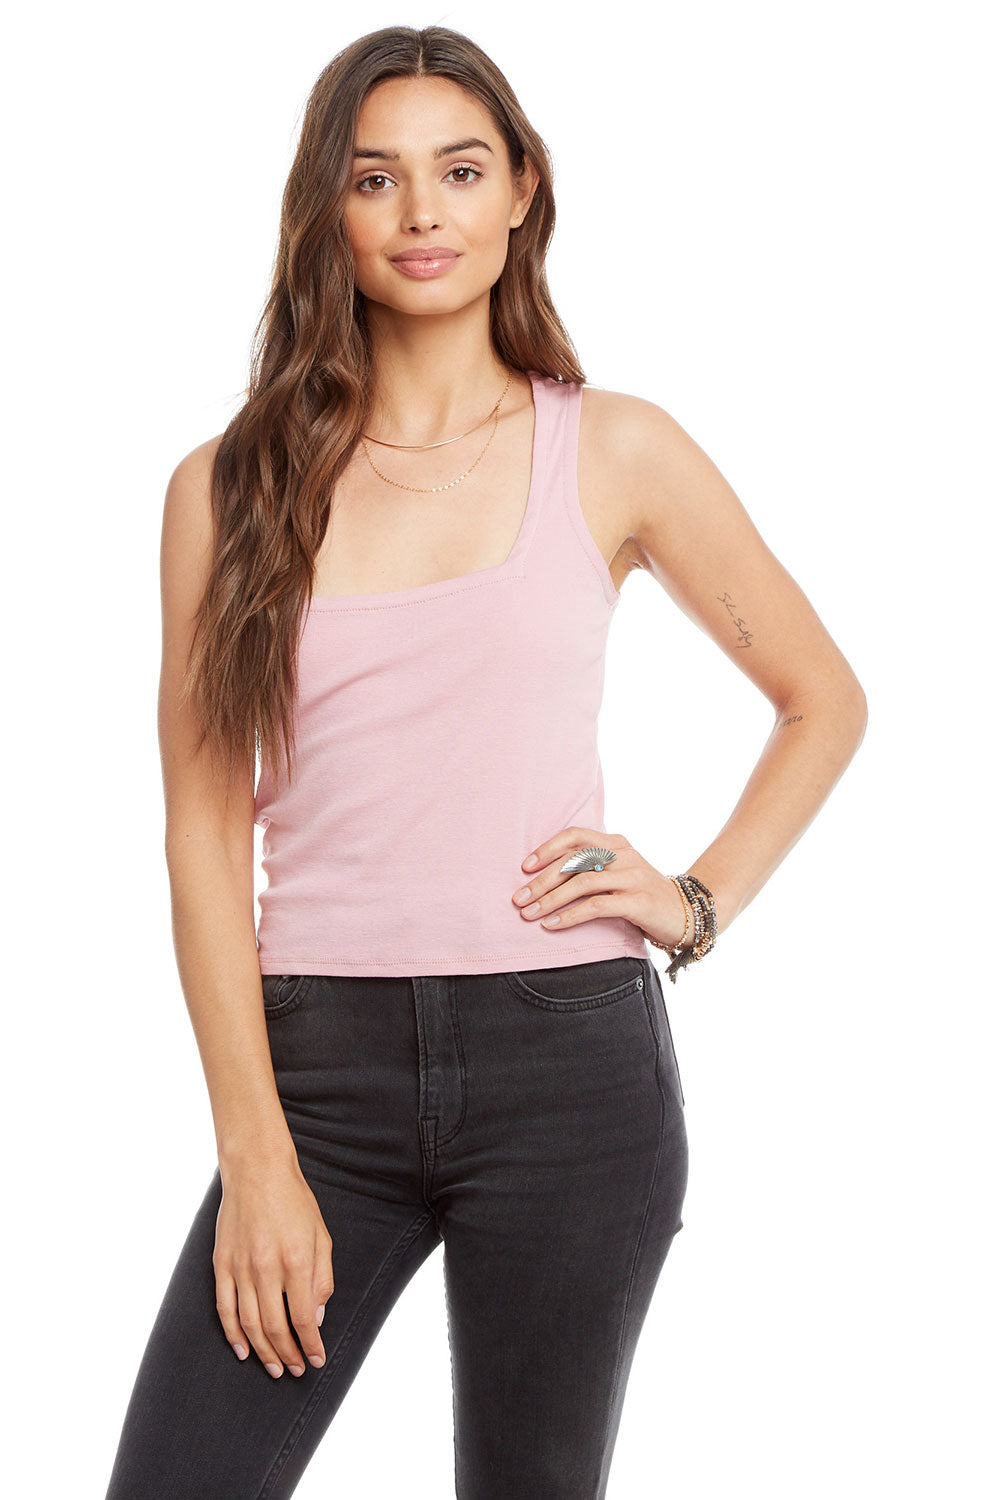 Baby Rib Square Neck Cropped Tank BCA chaserbrand4.myshopify.com